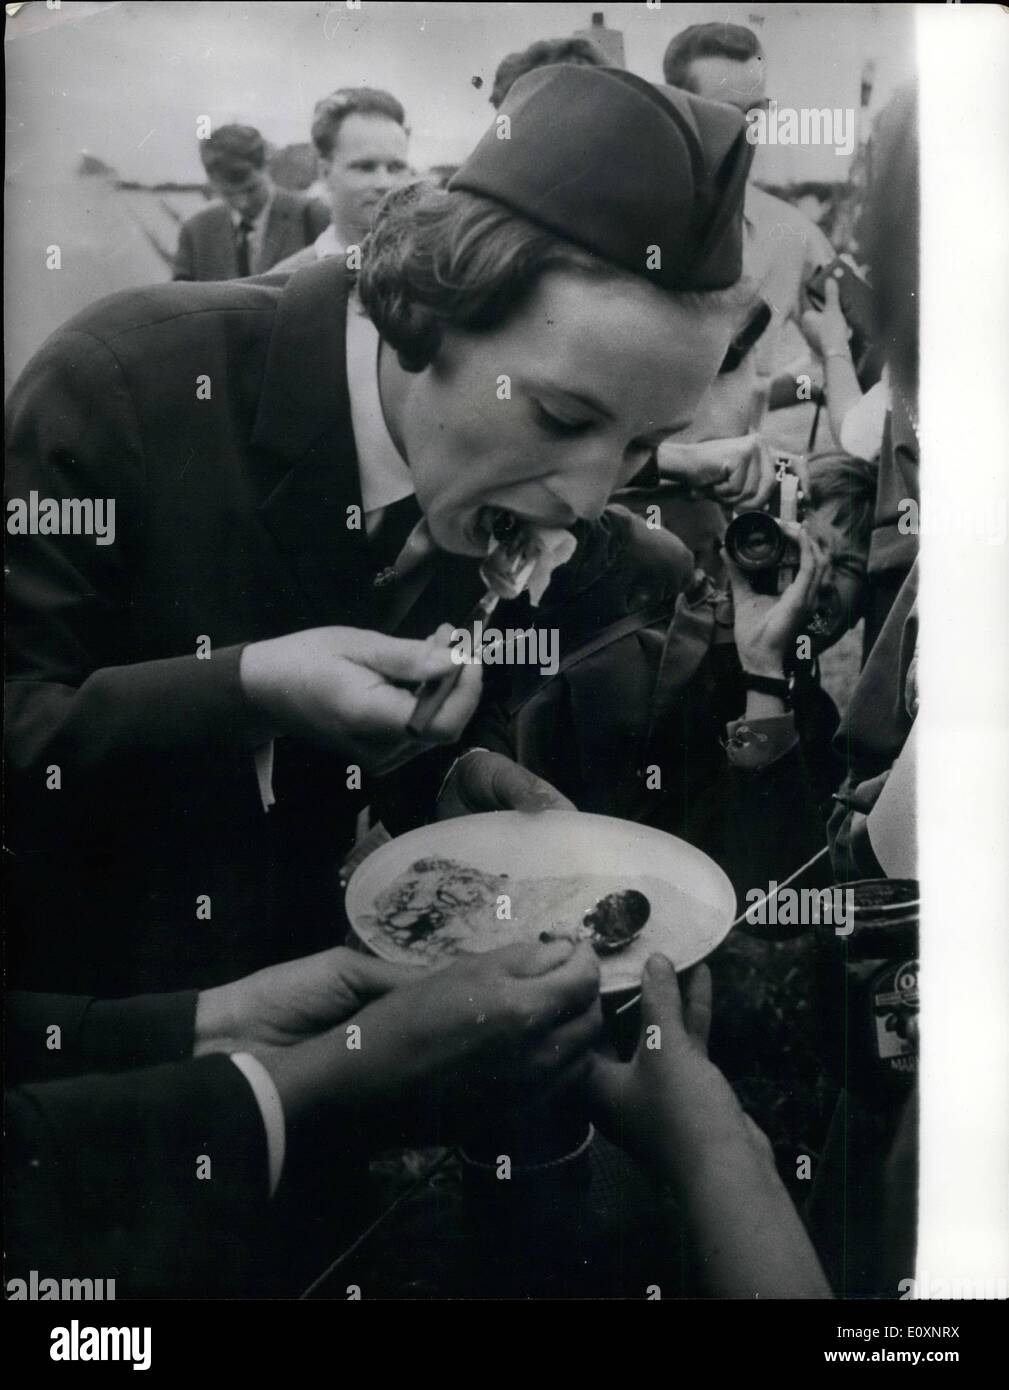 Jul. 07, 1967 - Princess Benedikte visits guide camp: Princess Benedikte of Denmark made a visit to the guide camp near Ringsted in Denmark, were 15,000 girl guides from 21 nations. Photo shows Princess Benedikte is seen tasting a pancake made by one of the guides during her tour of the camp. - Stock Image